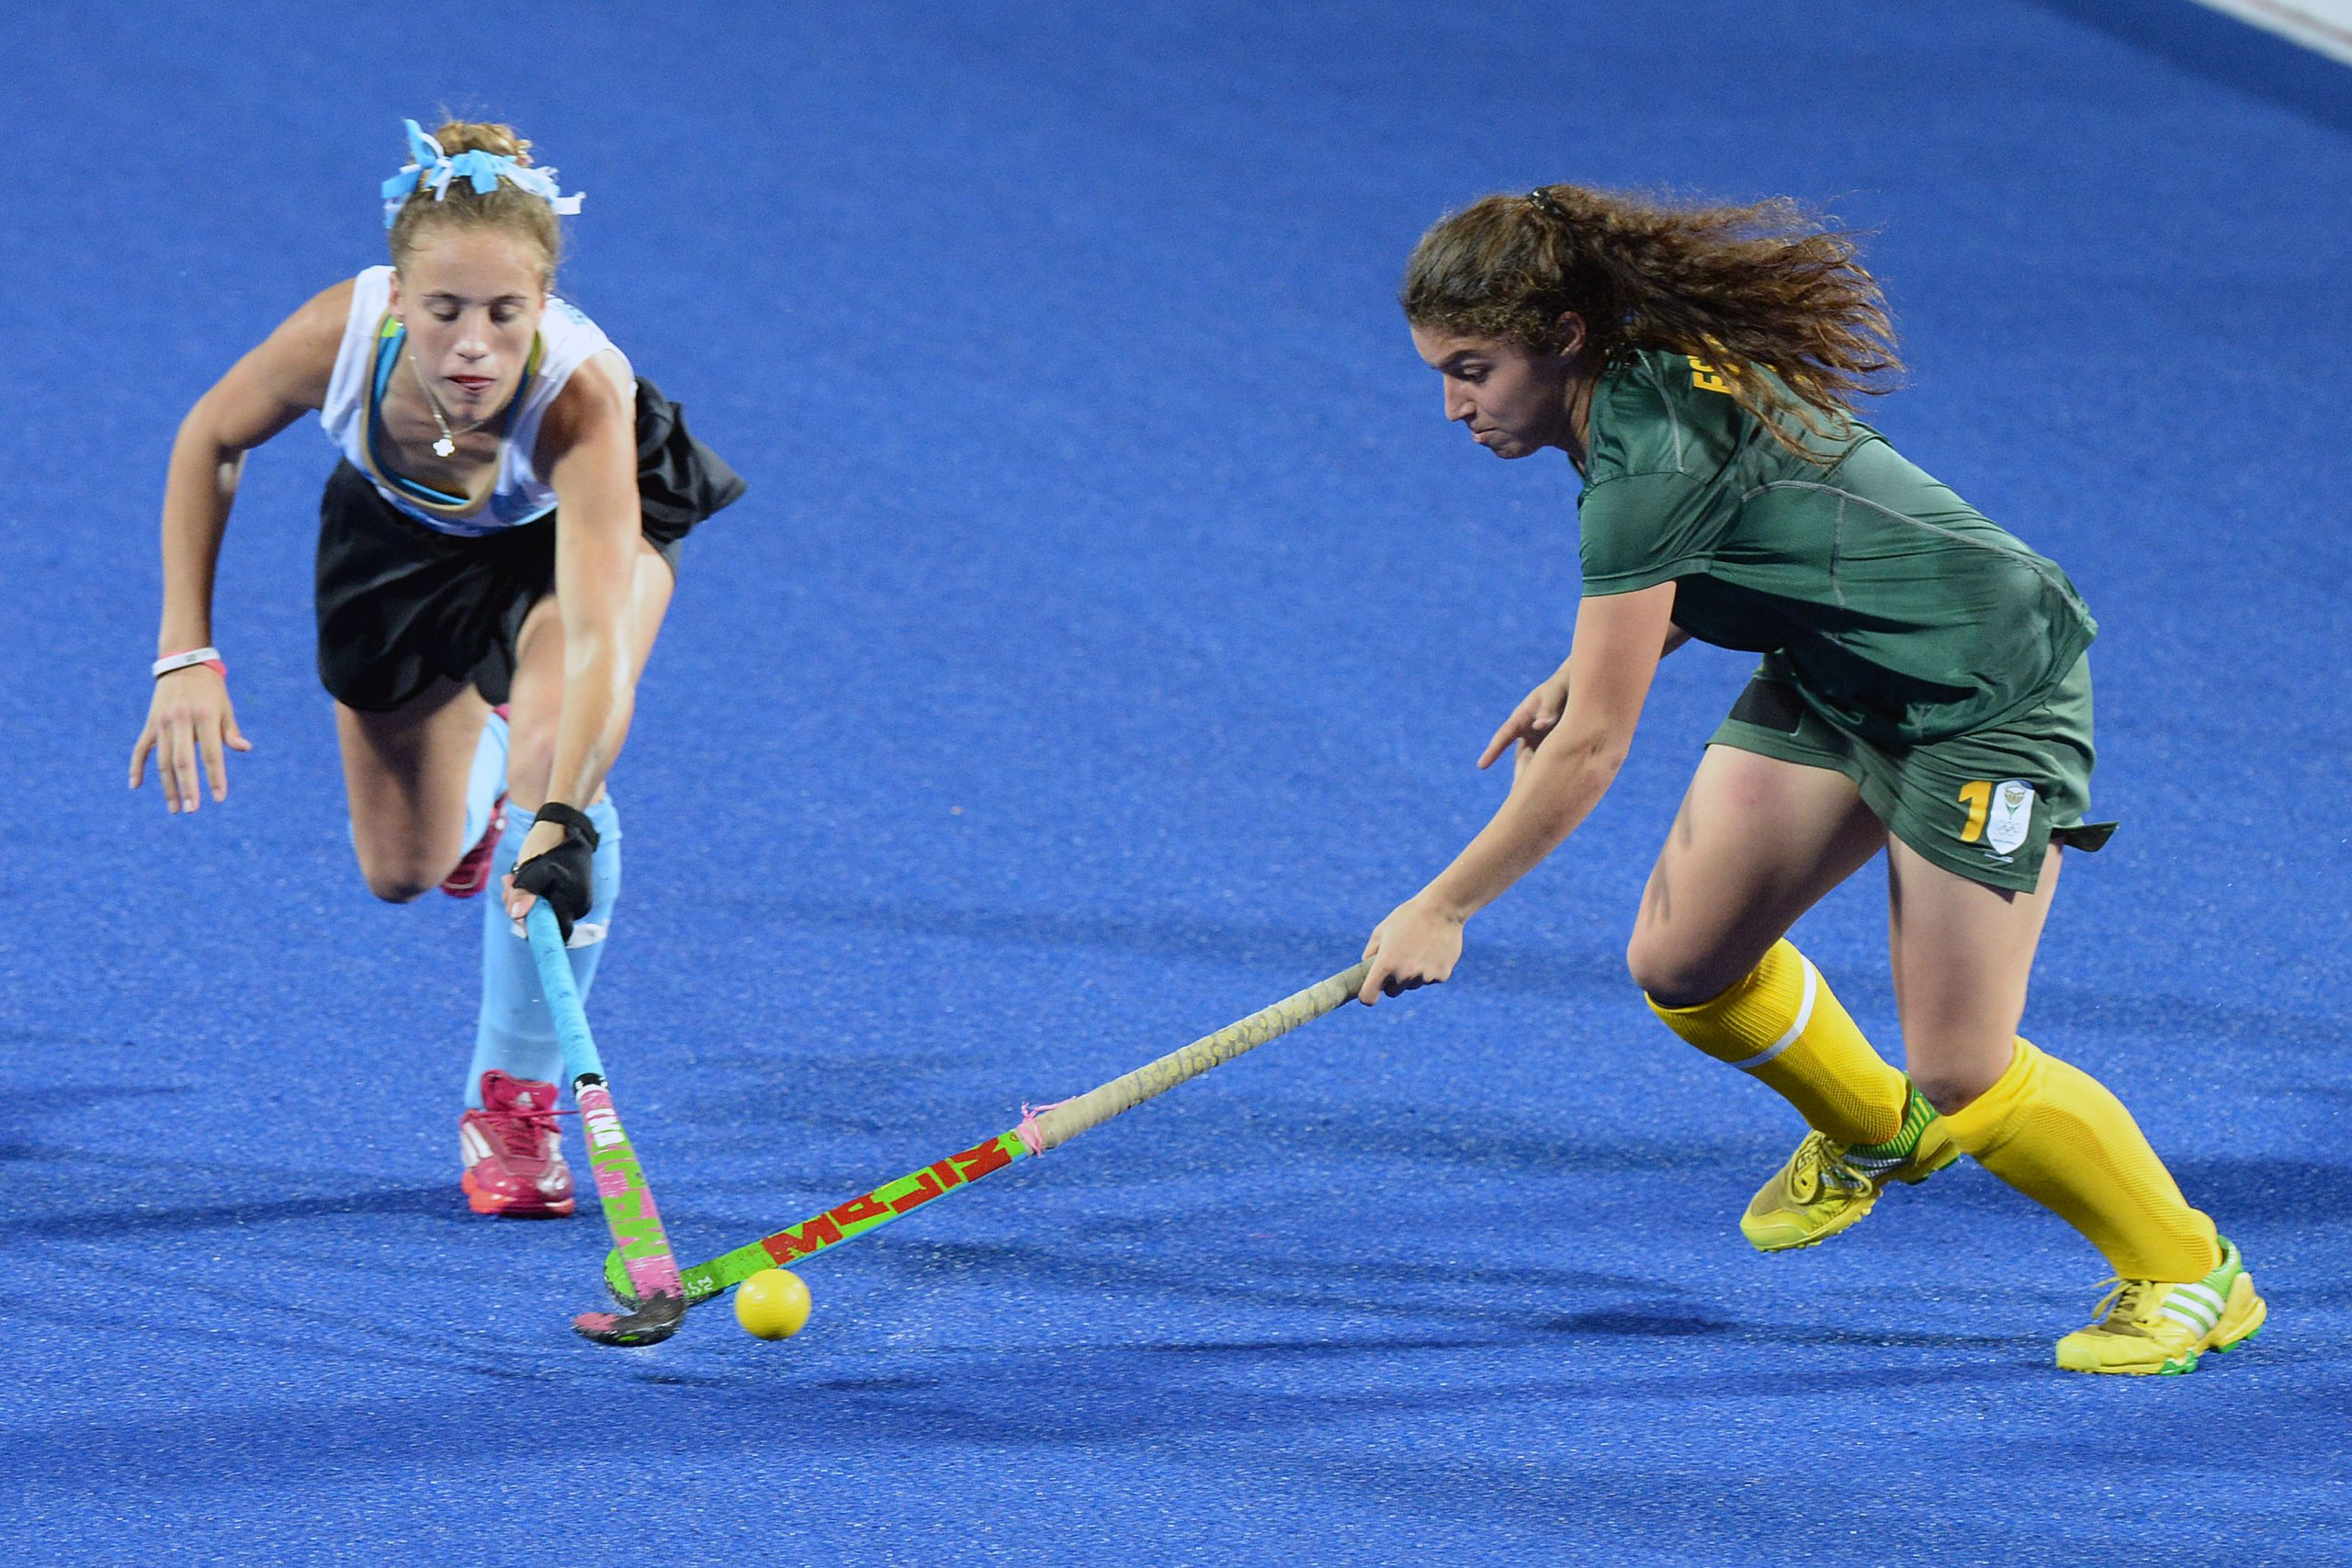 Medals continue to elude Team SA in China